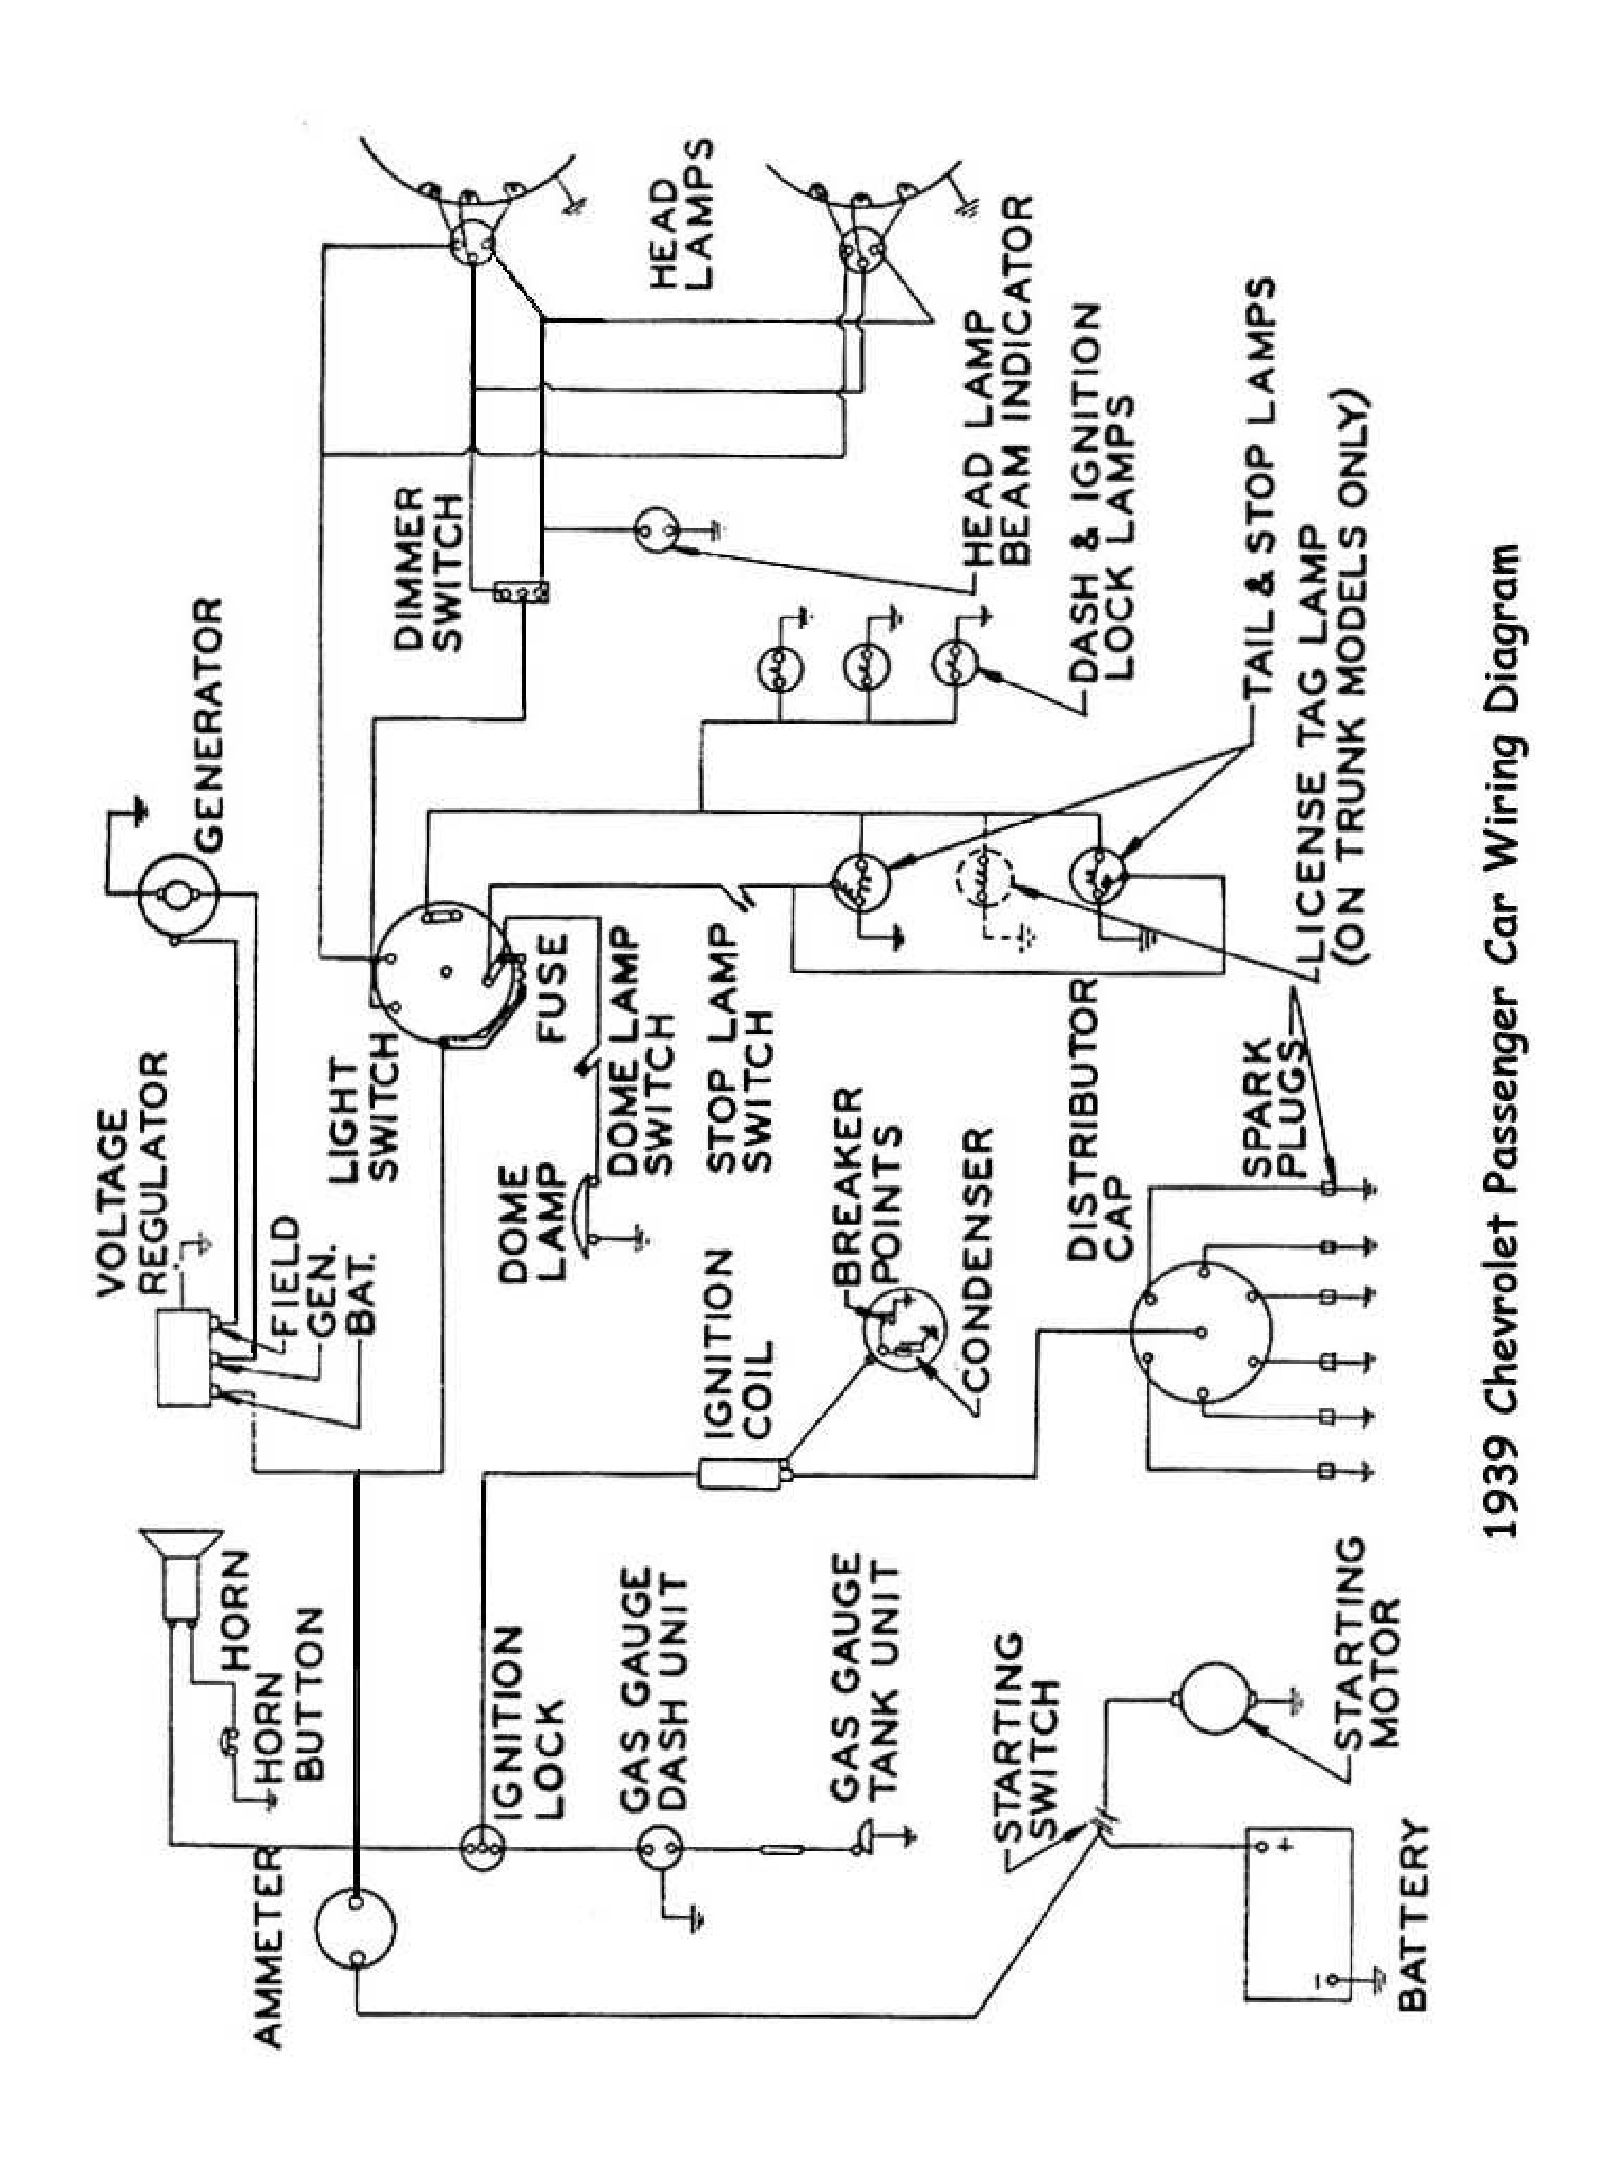 chevy wiring diagrams 6 Wire Turn Signal Switch Wiring Schematic 1939 passenger car wiring